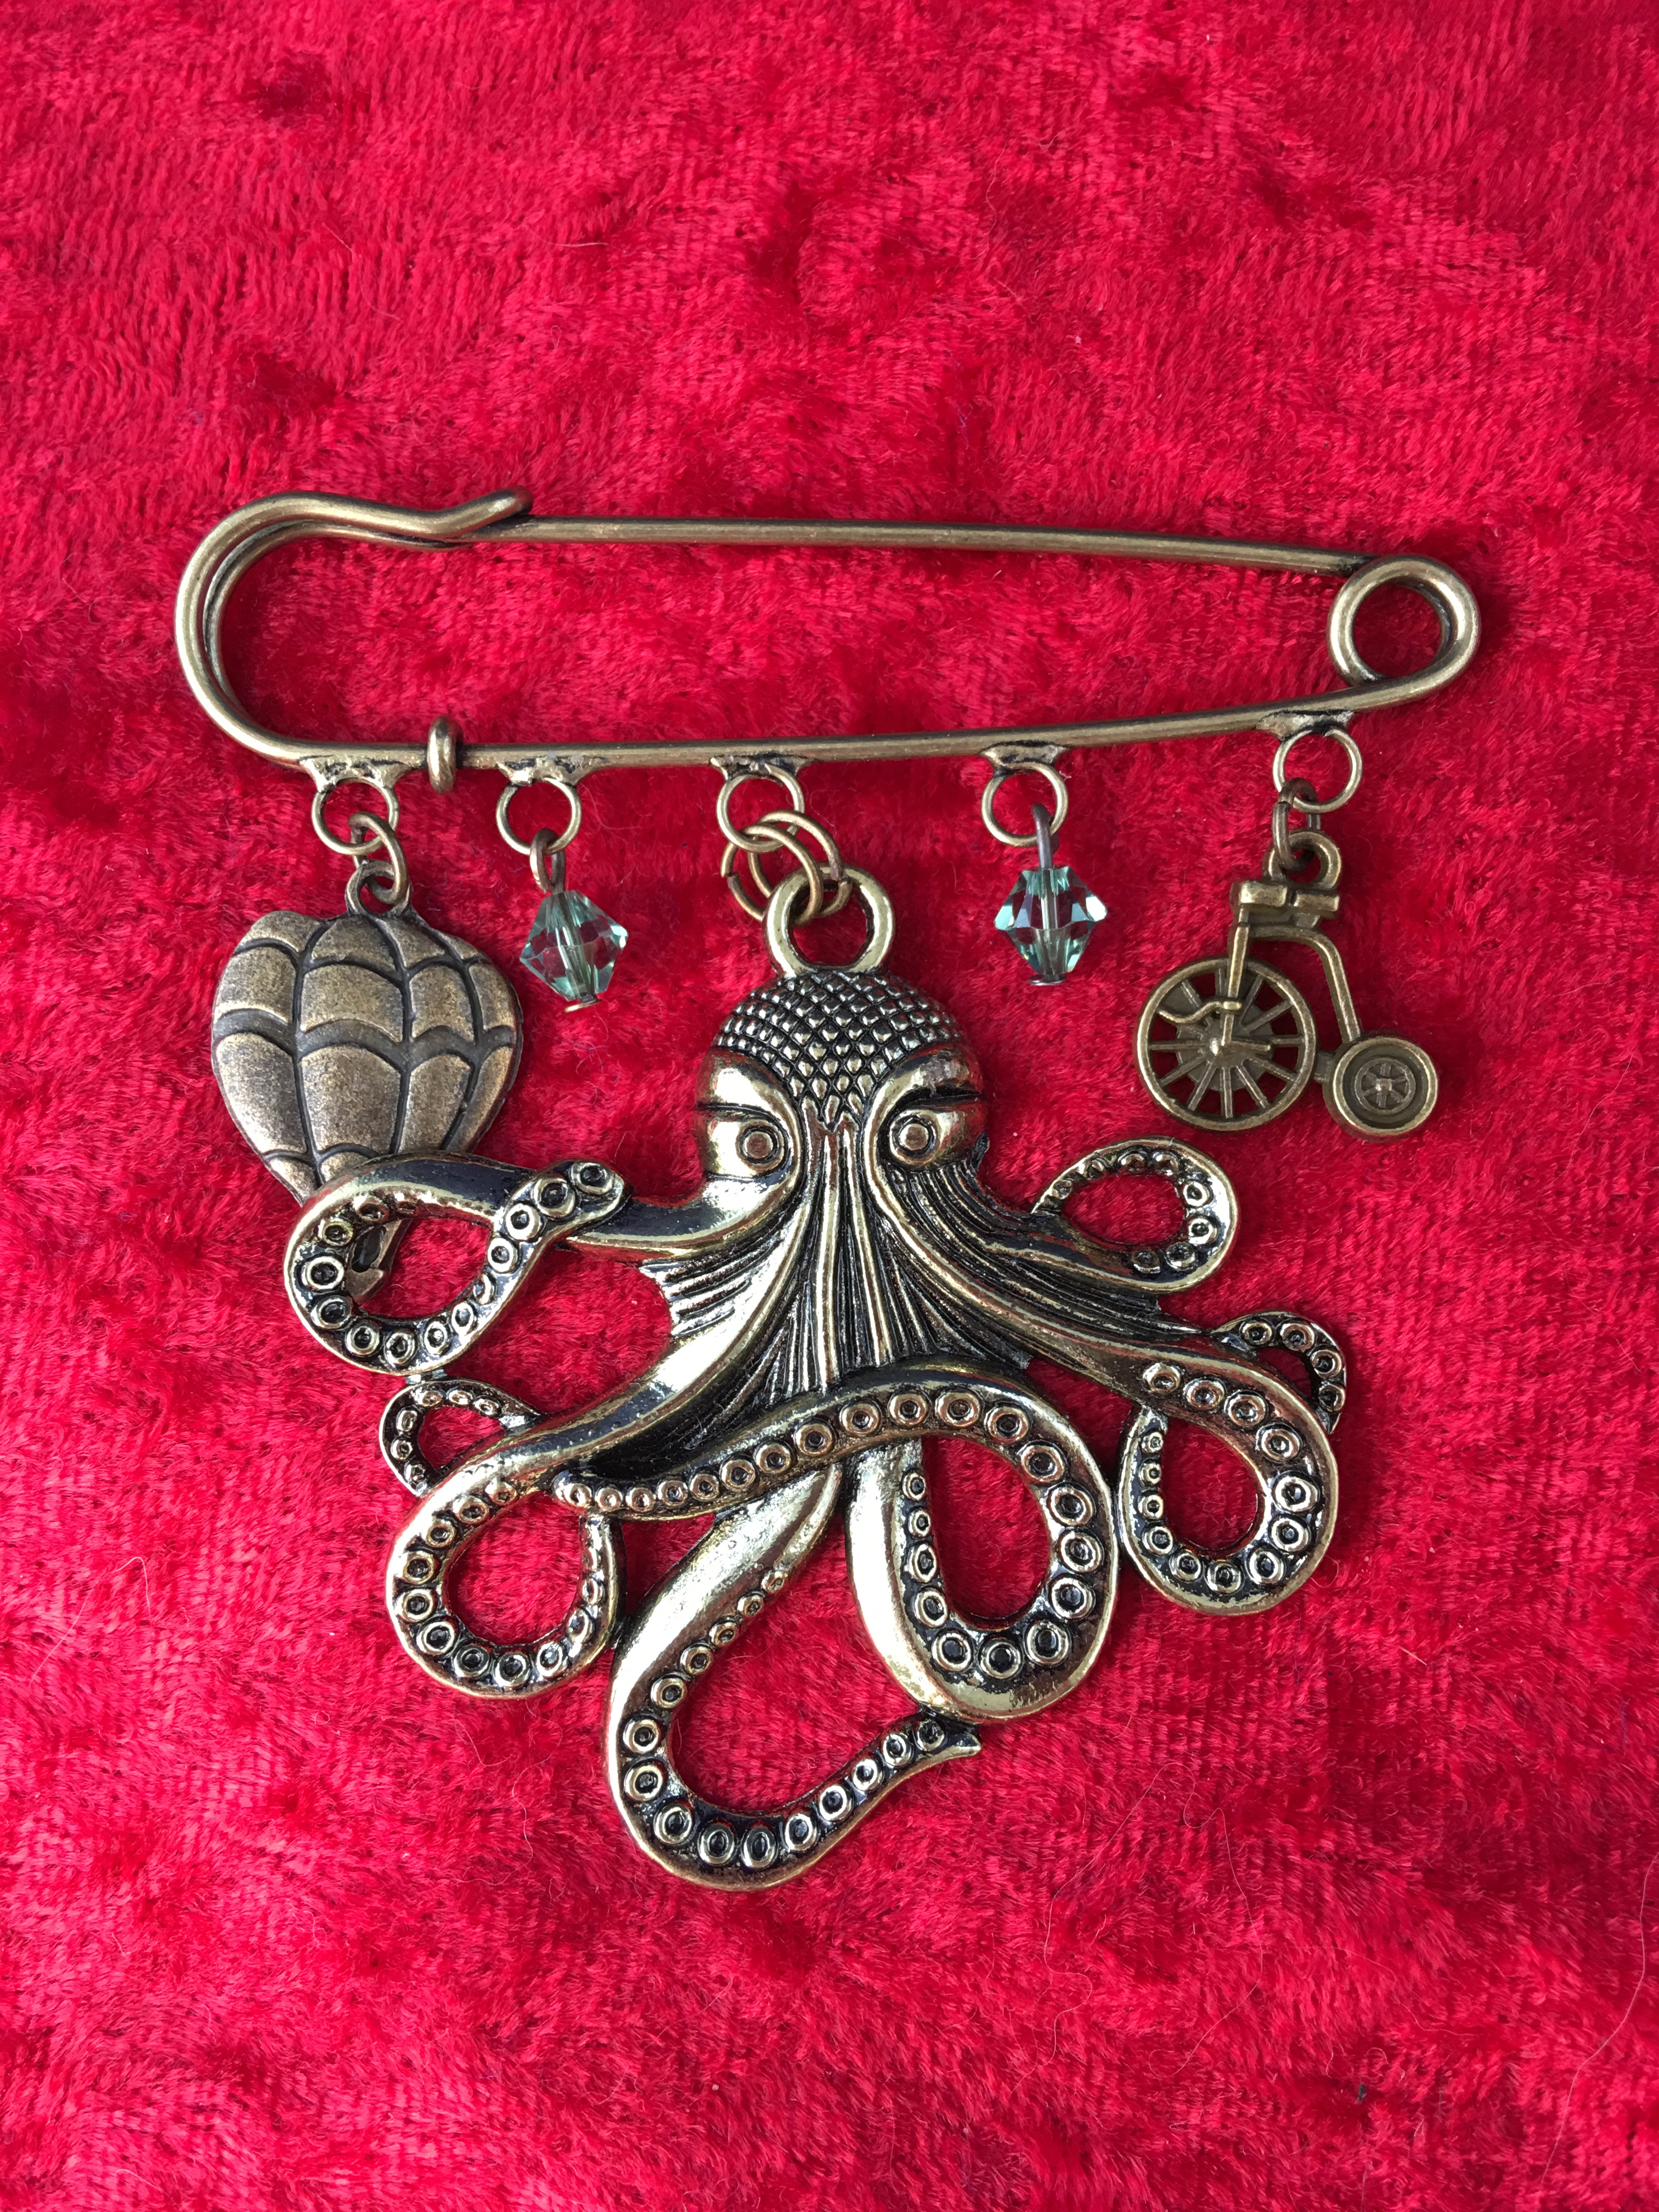 kilt pin brooch large kraken